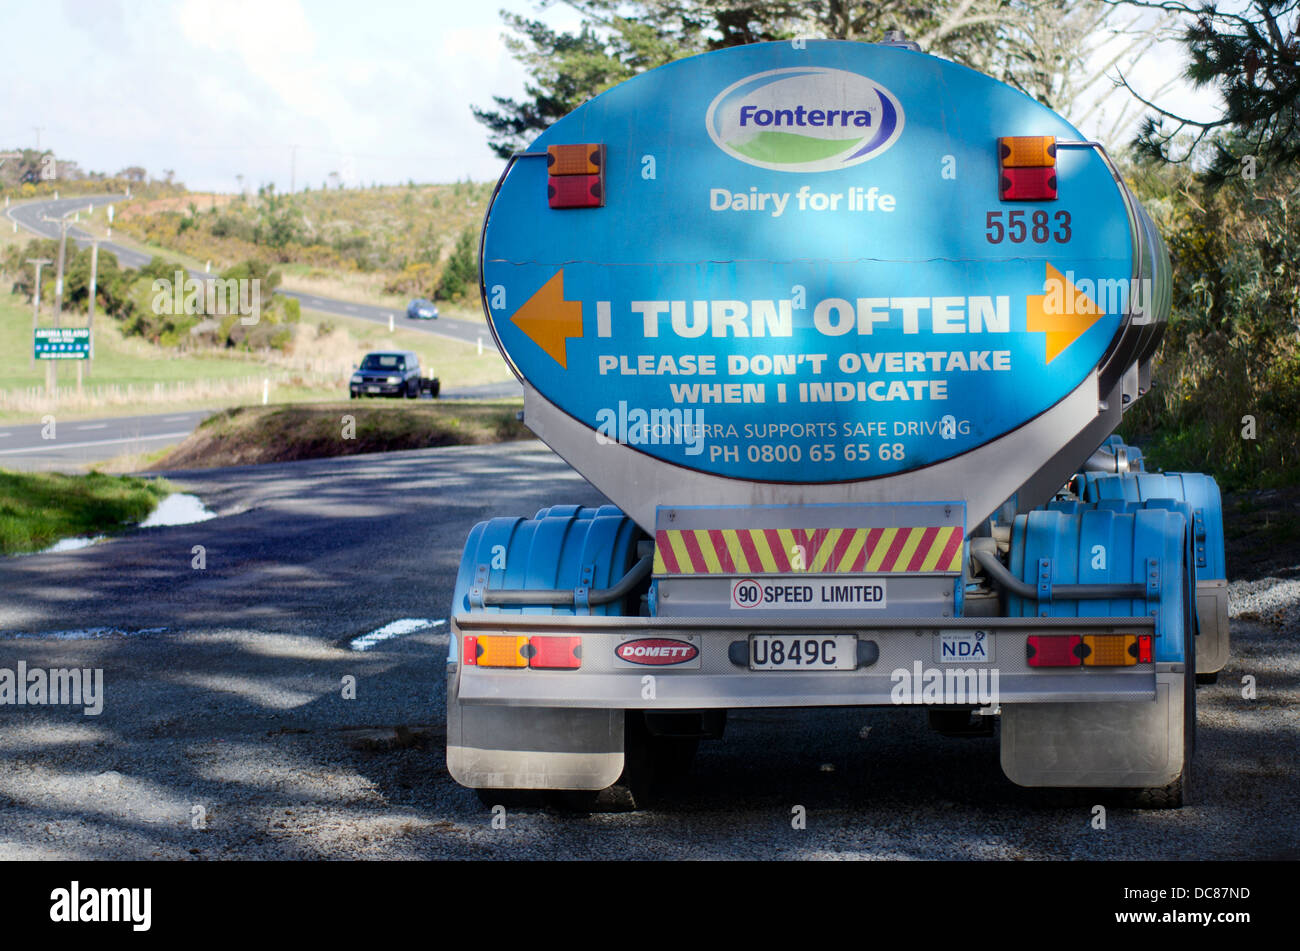 Fonterra company milk truck in New Zealand. Fonterra holds 30% of the world's dairy exports and is New Zealand's - Stock Image